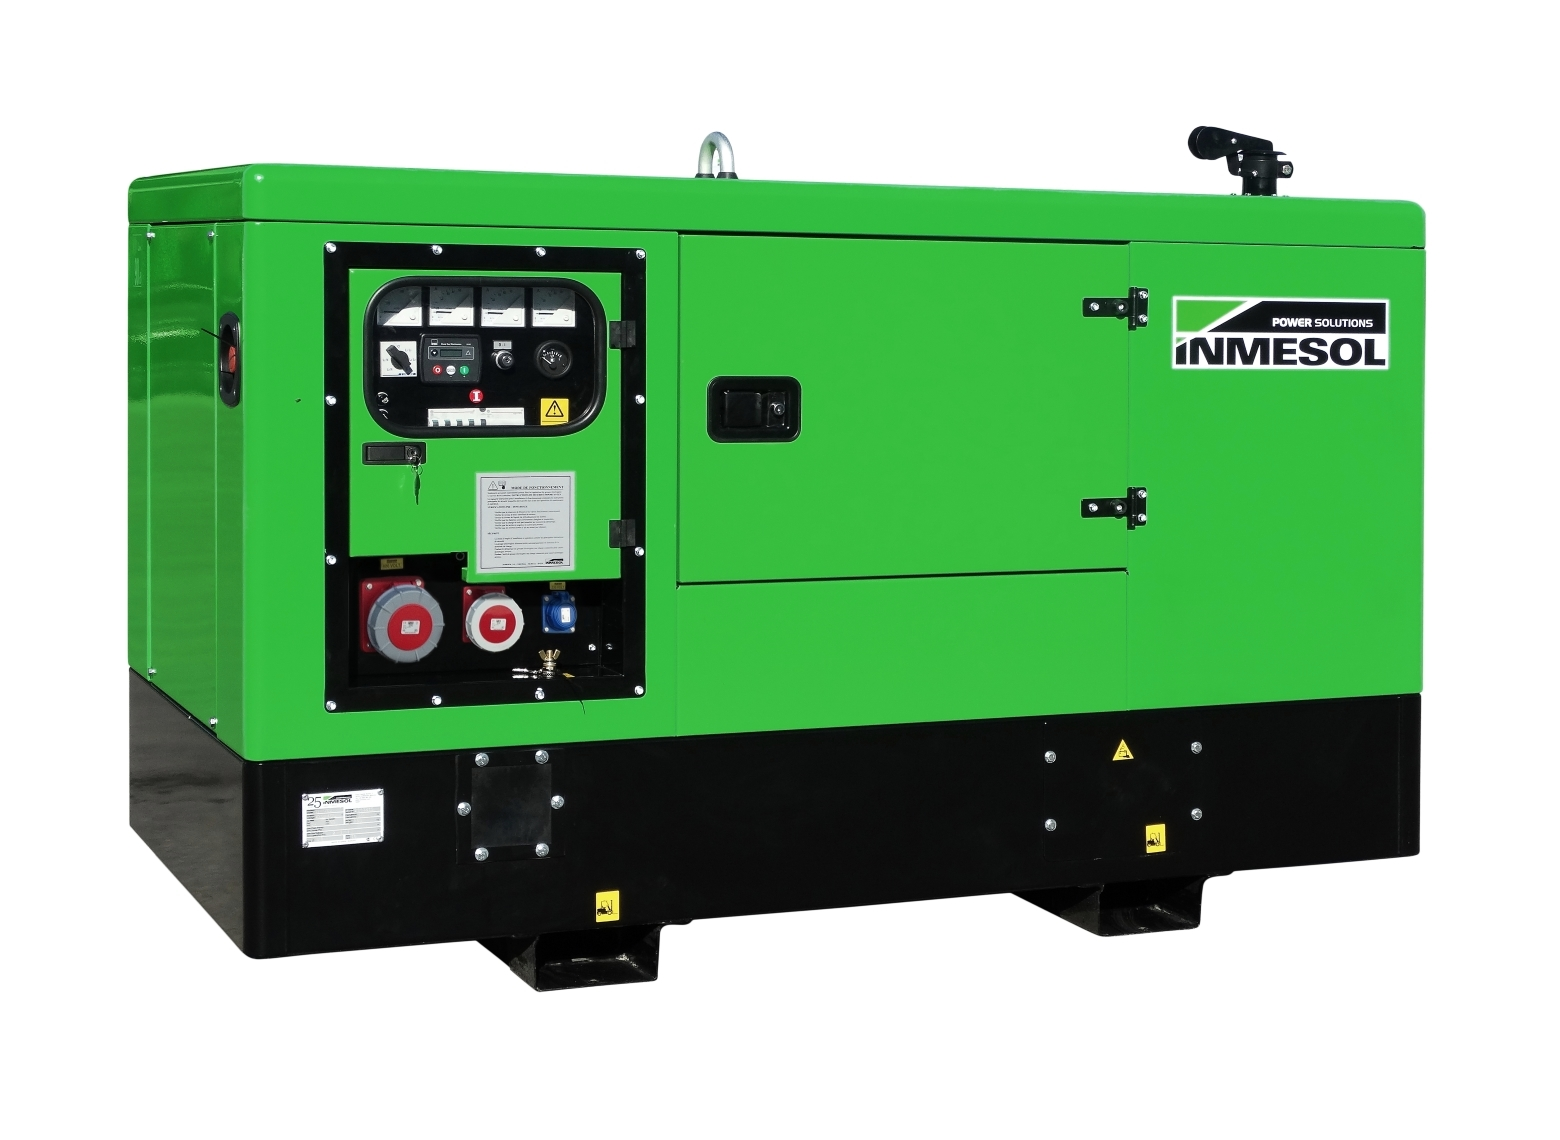 Generator with manual control panel.ID-033 - DEUTZ - F4M2011 - 1.500 R.P.M. | 50 Hz